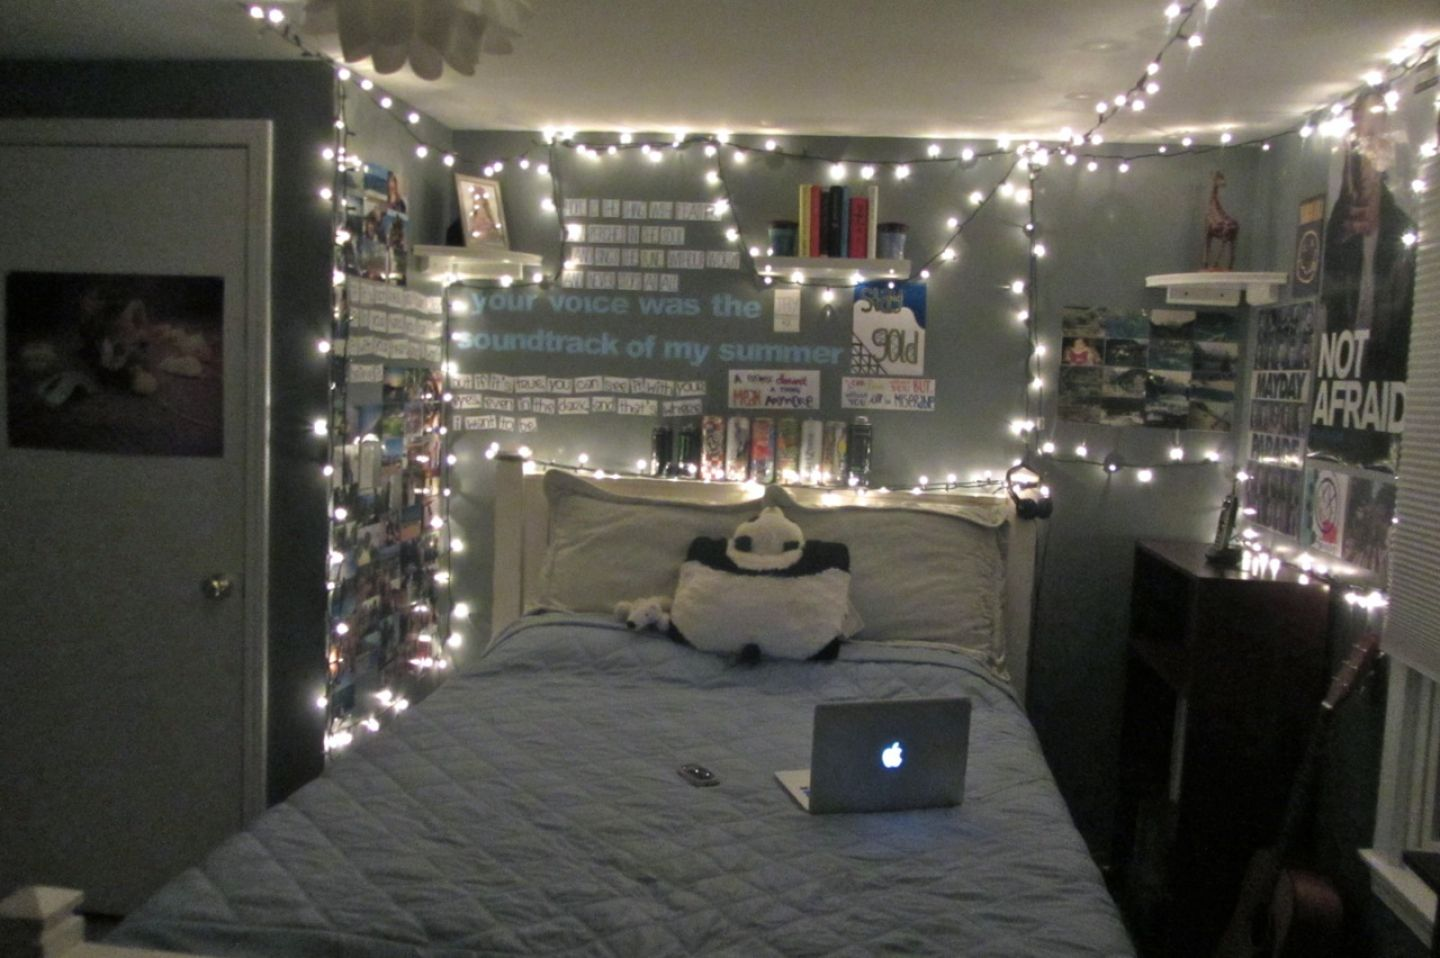 Cool rooms with lights tumblr - Bedroom Tumblr Girl Bedrooms With Awesome Light And Imac On The